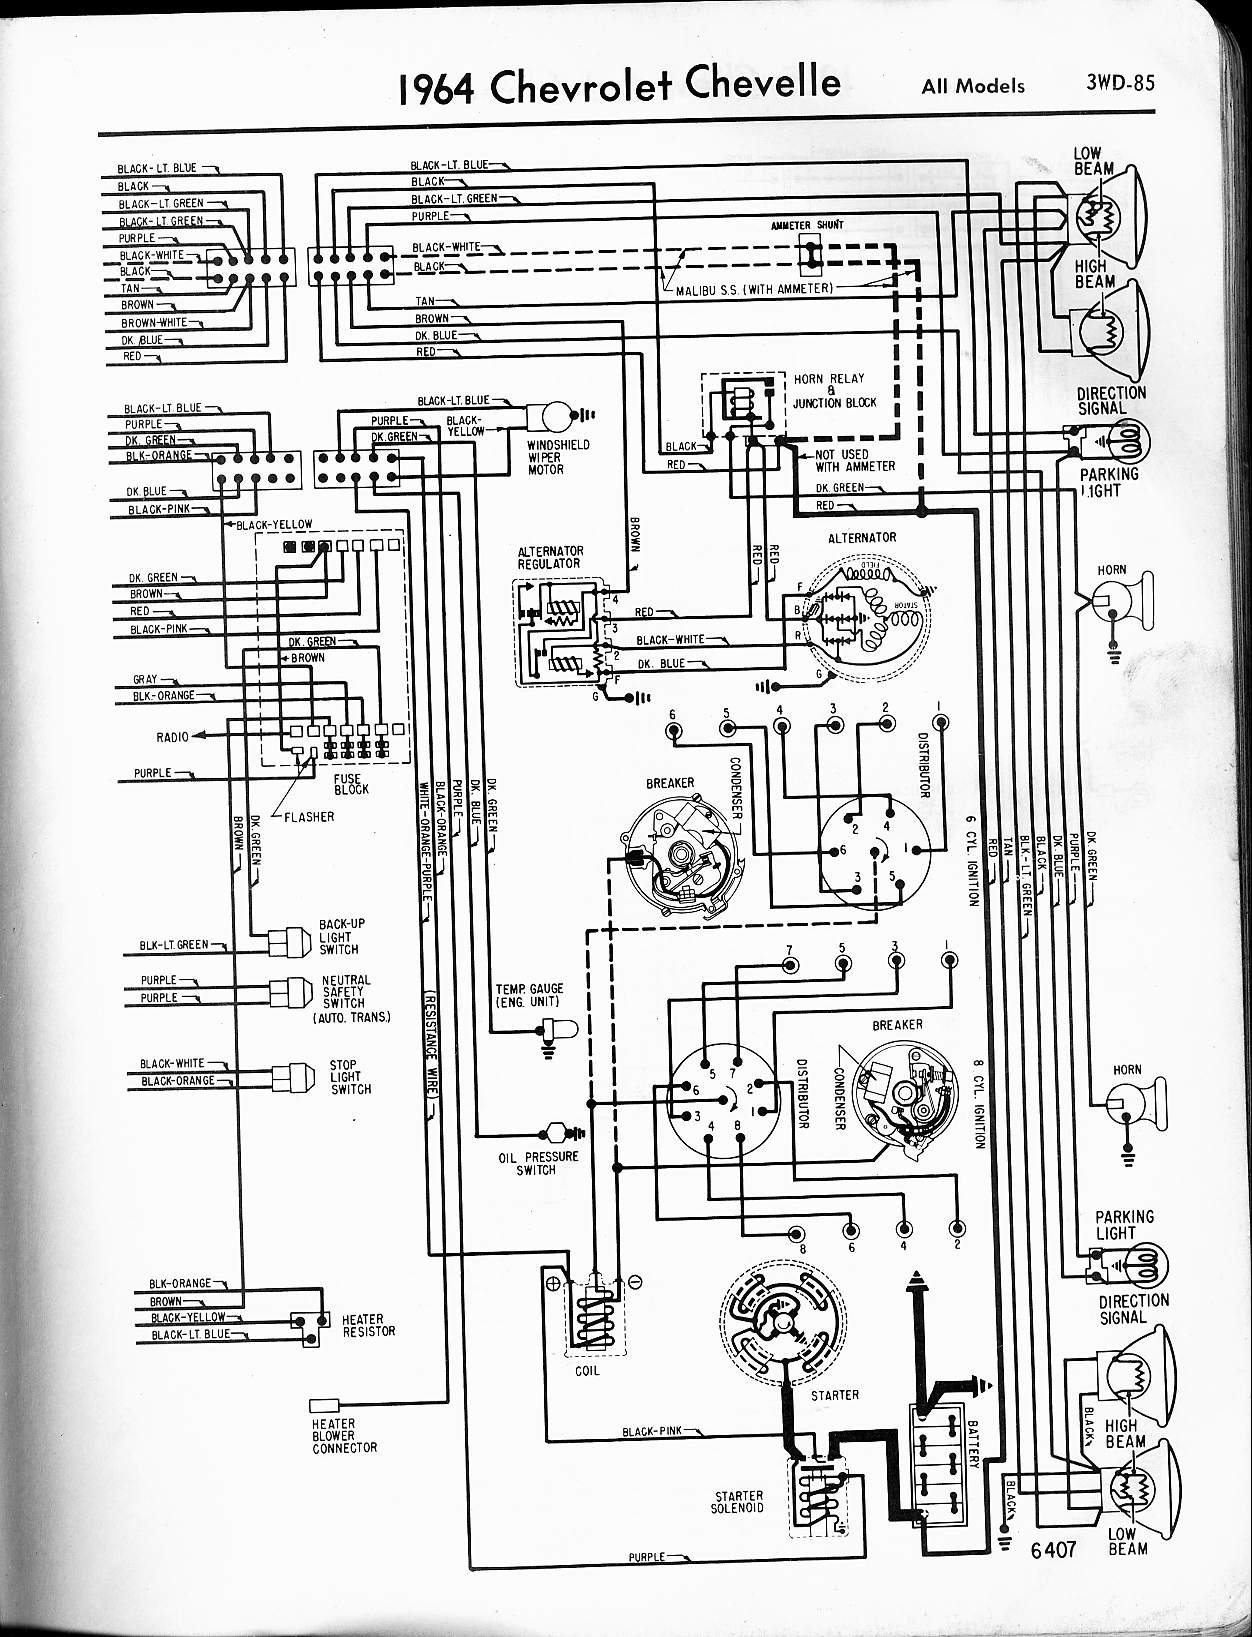 Wiring Diagram For 1967 Chevelle - Data Wiring Diagram Today on 1967 chevelle starter wire, honda accord starter wiring diagram, 1996 impala ss starter wiring diagram, 1963 corvette starter wiring diagram, 1966 mustang starter wiring diagram, 1967 chevelle wiring schematic, 1968 corvette starter wiring diagram, 1966 corvette starter wiring diagram, 1971 camaro starter wiring diagram, 2010 camaro starter wiring diagram, 1976 corvette starter wiring diagram, 1972 camaro starter wiring diagram, 1962 corvette starter wiring diagram, 1969 gto starter wiring diagram, 1969 corvette starter wiring diagram,